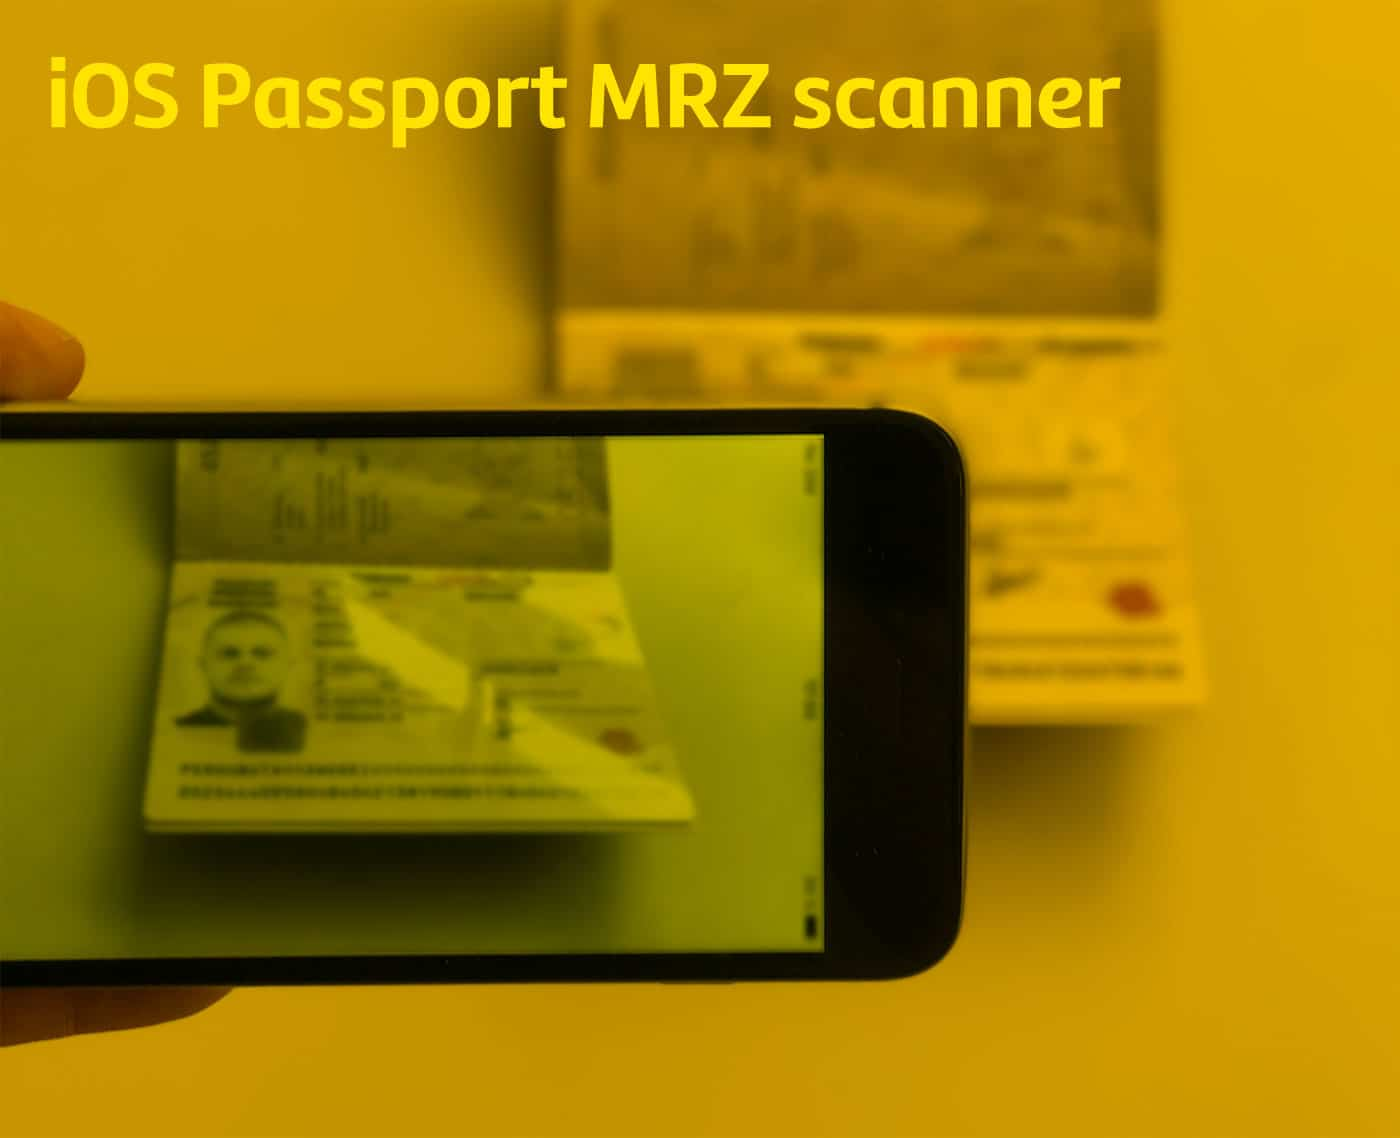 Mobile Passport MRZ OCR SDK for iOS - Machine-readable passport